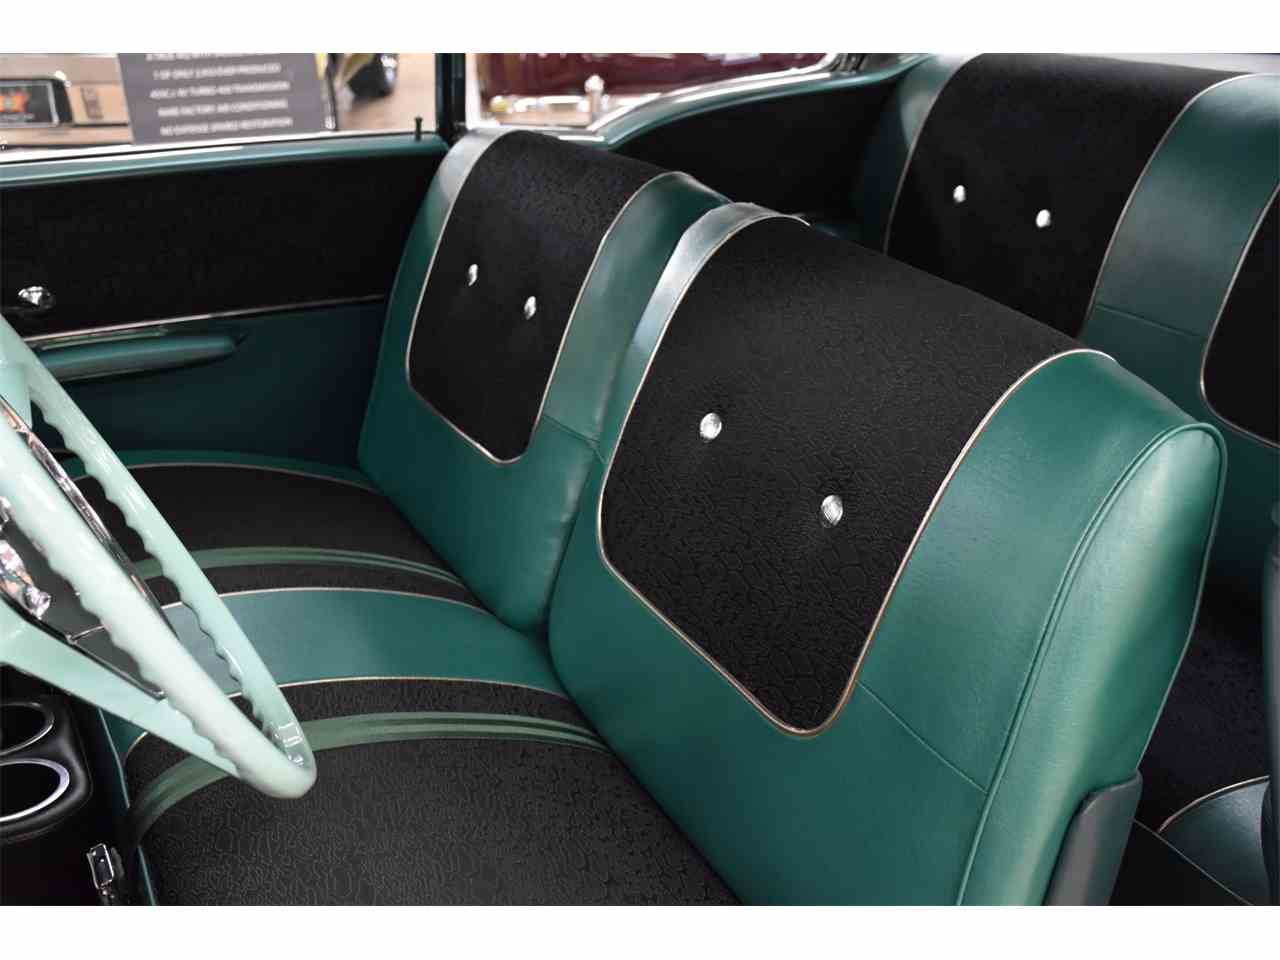 Large Picture of '57 Bel Air located in Florida Auction Vehicle Offered by Ideal Classic Cars - MH2G